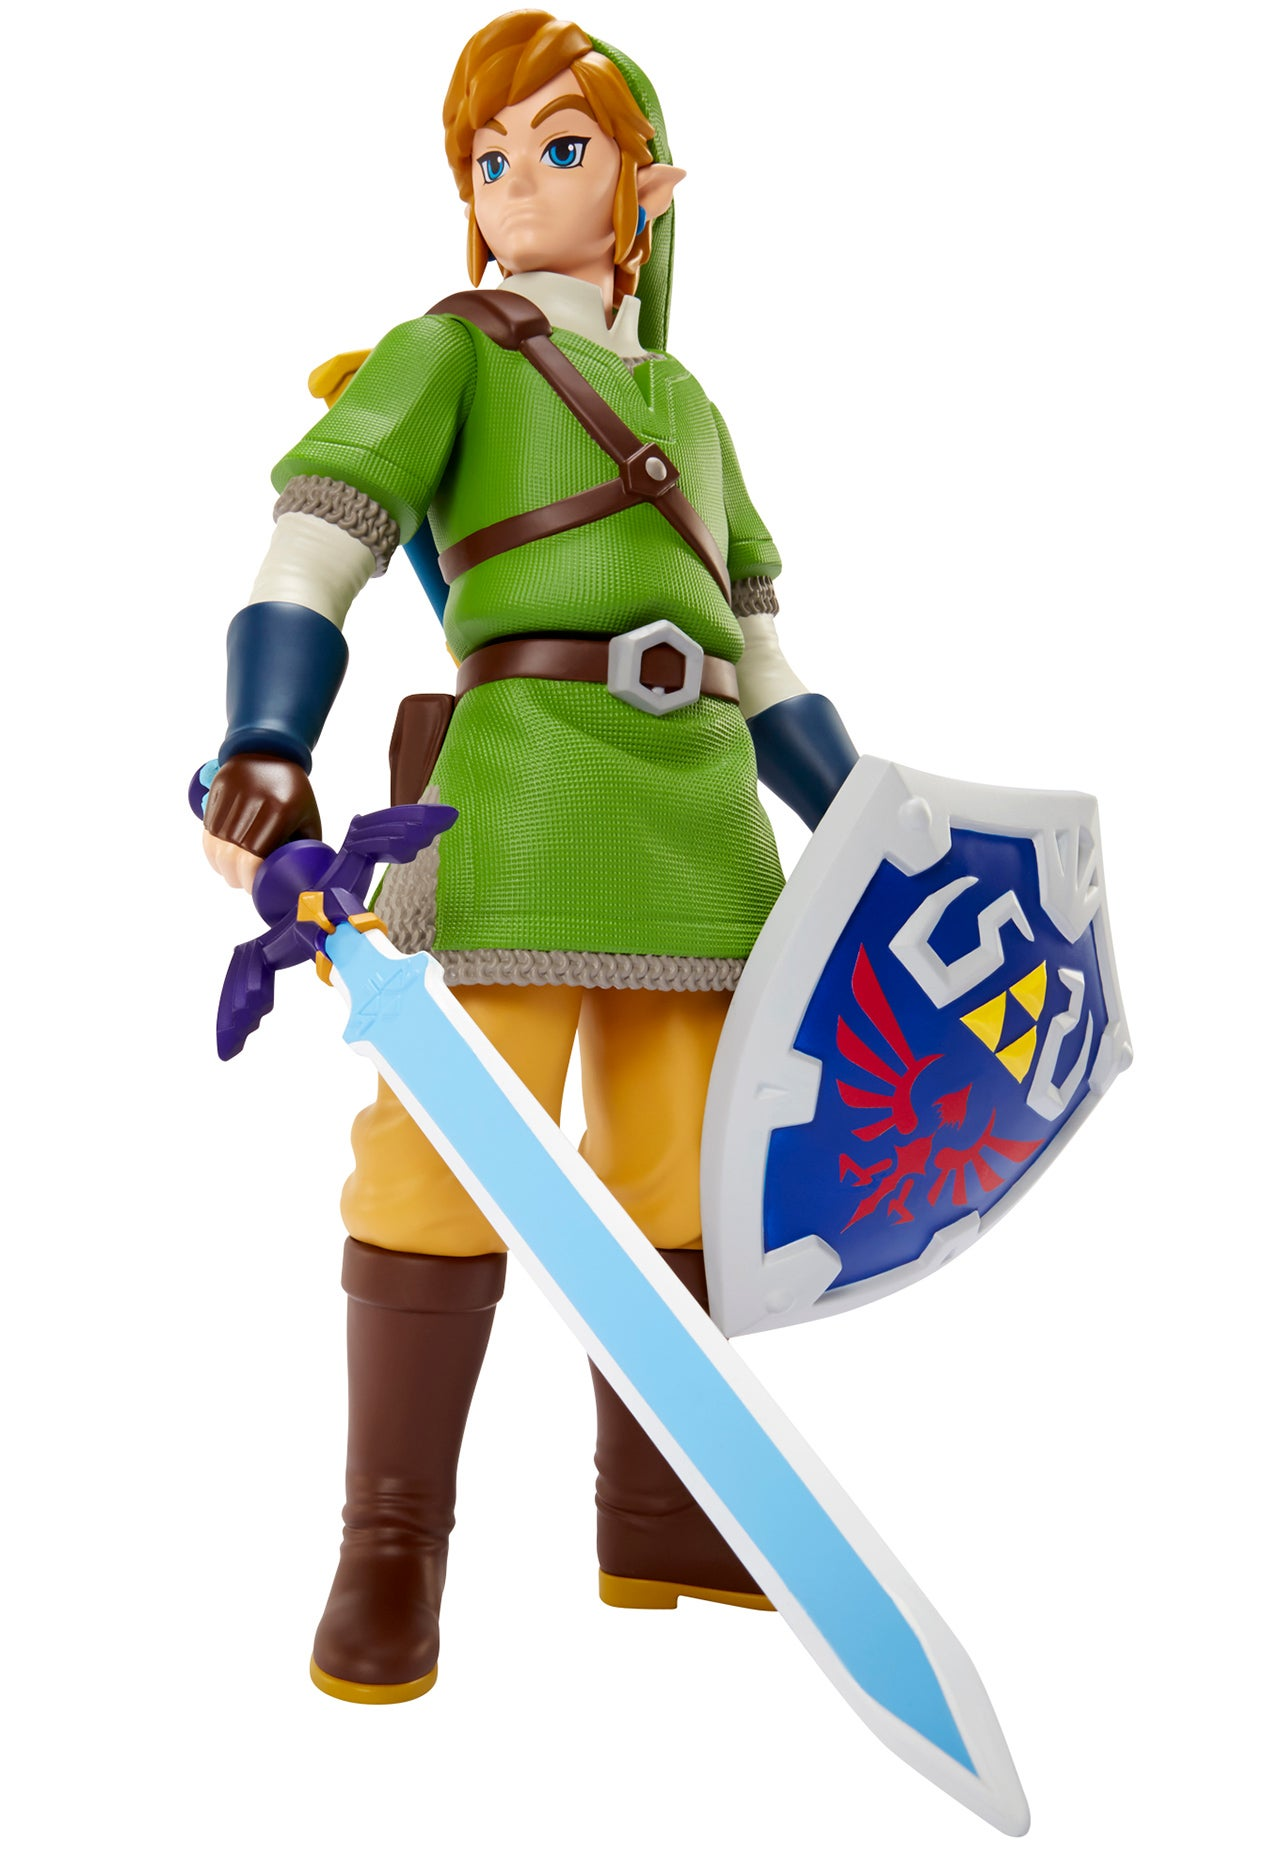 Forget Zelda, This 20-Inch Link Figure Is Worthy Of an Epic Hyrule Quest